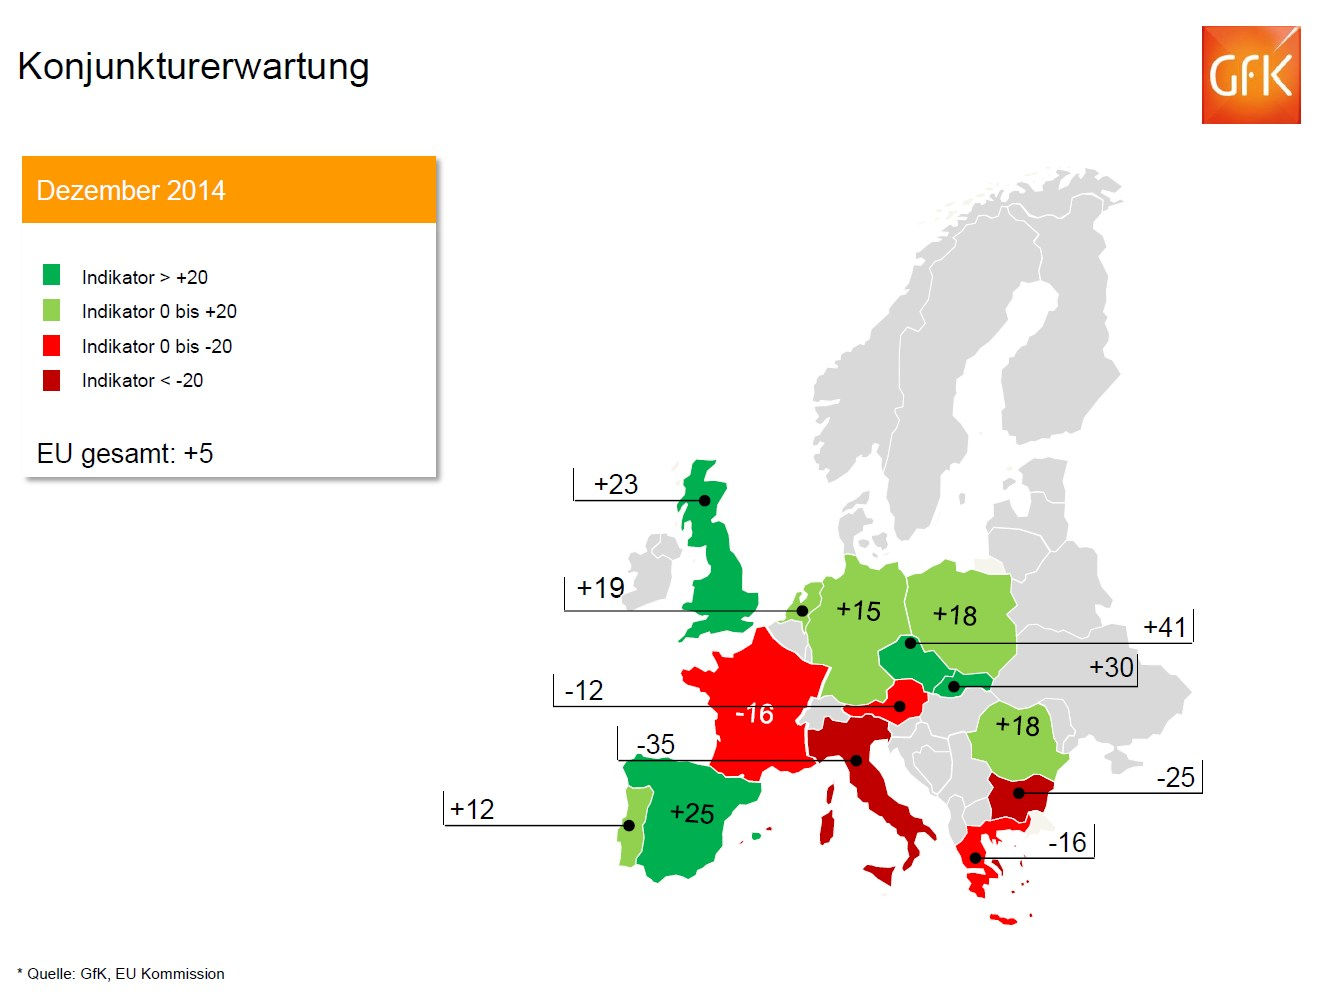 grafik gfk Konjunkturerwartung Dez 2014